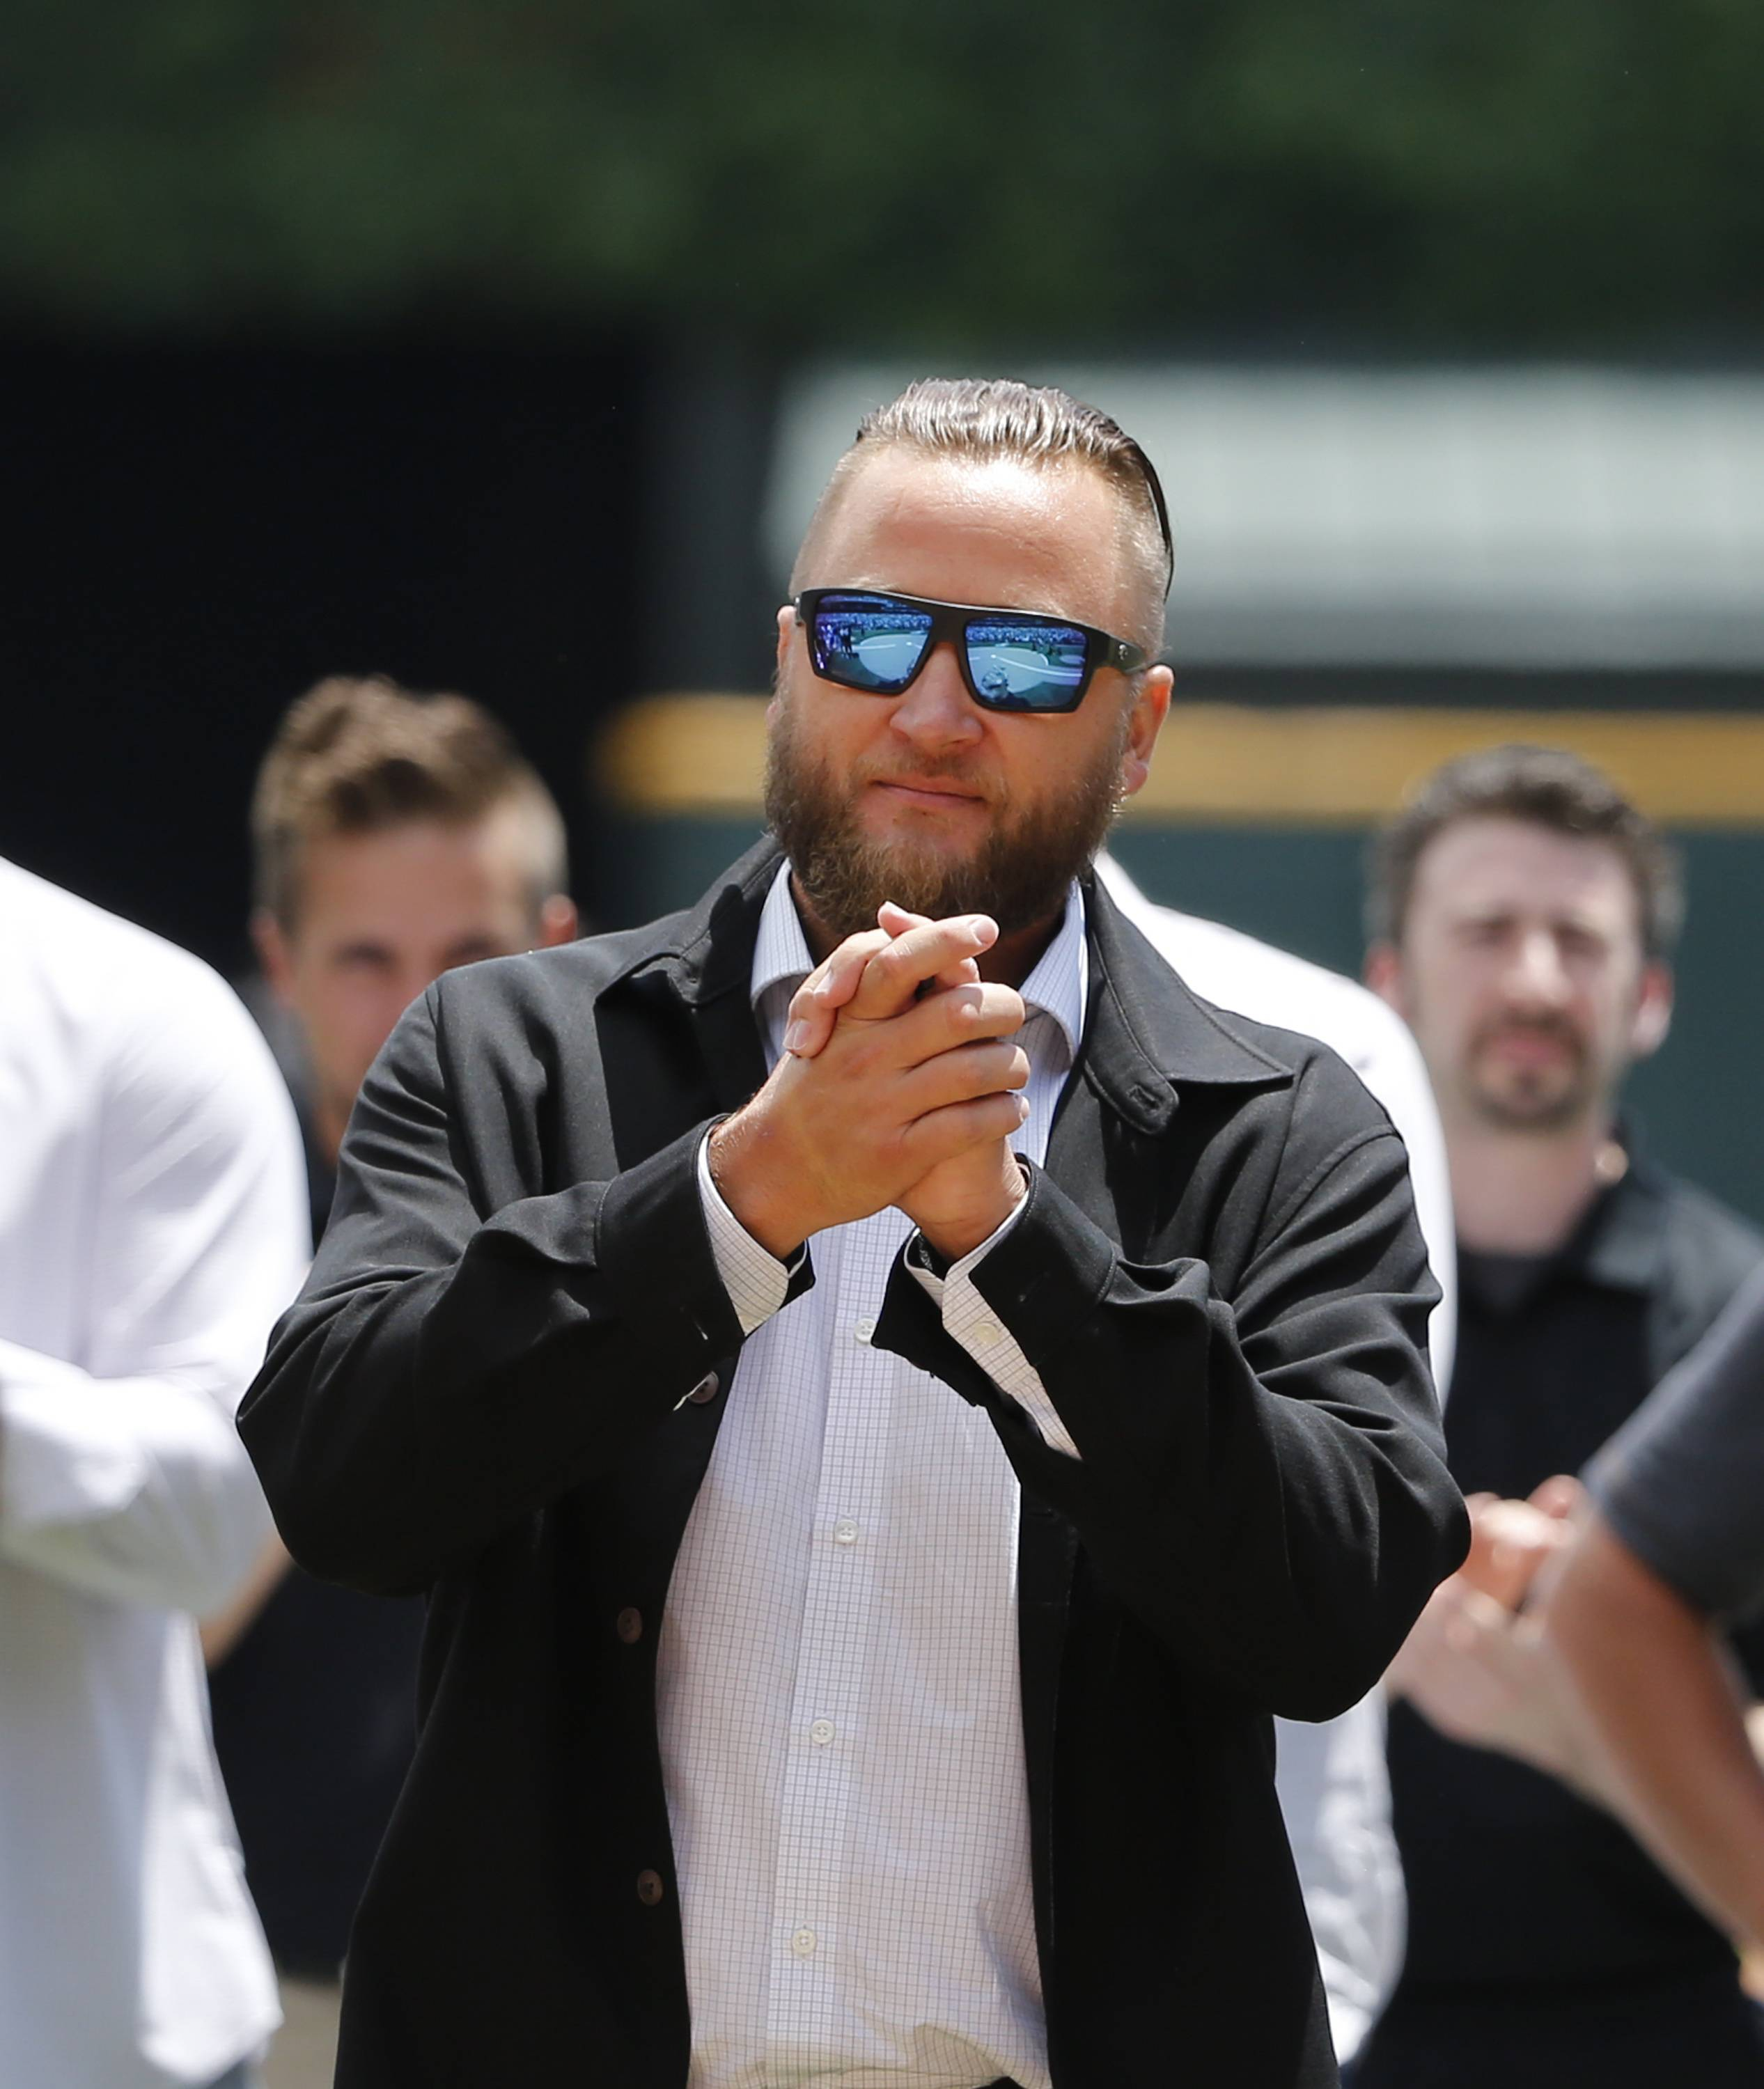 Former Chicago White Sox pitcher Mark Buehrle acknowledges the crowd during ceremonies retiring his No. 56 before a baseball game between the White Sox and the Oakland Athletics Saturday, June 24, 2017, in Chicago. (AP Photo/Charles Rex Arbogast)